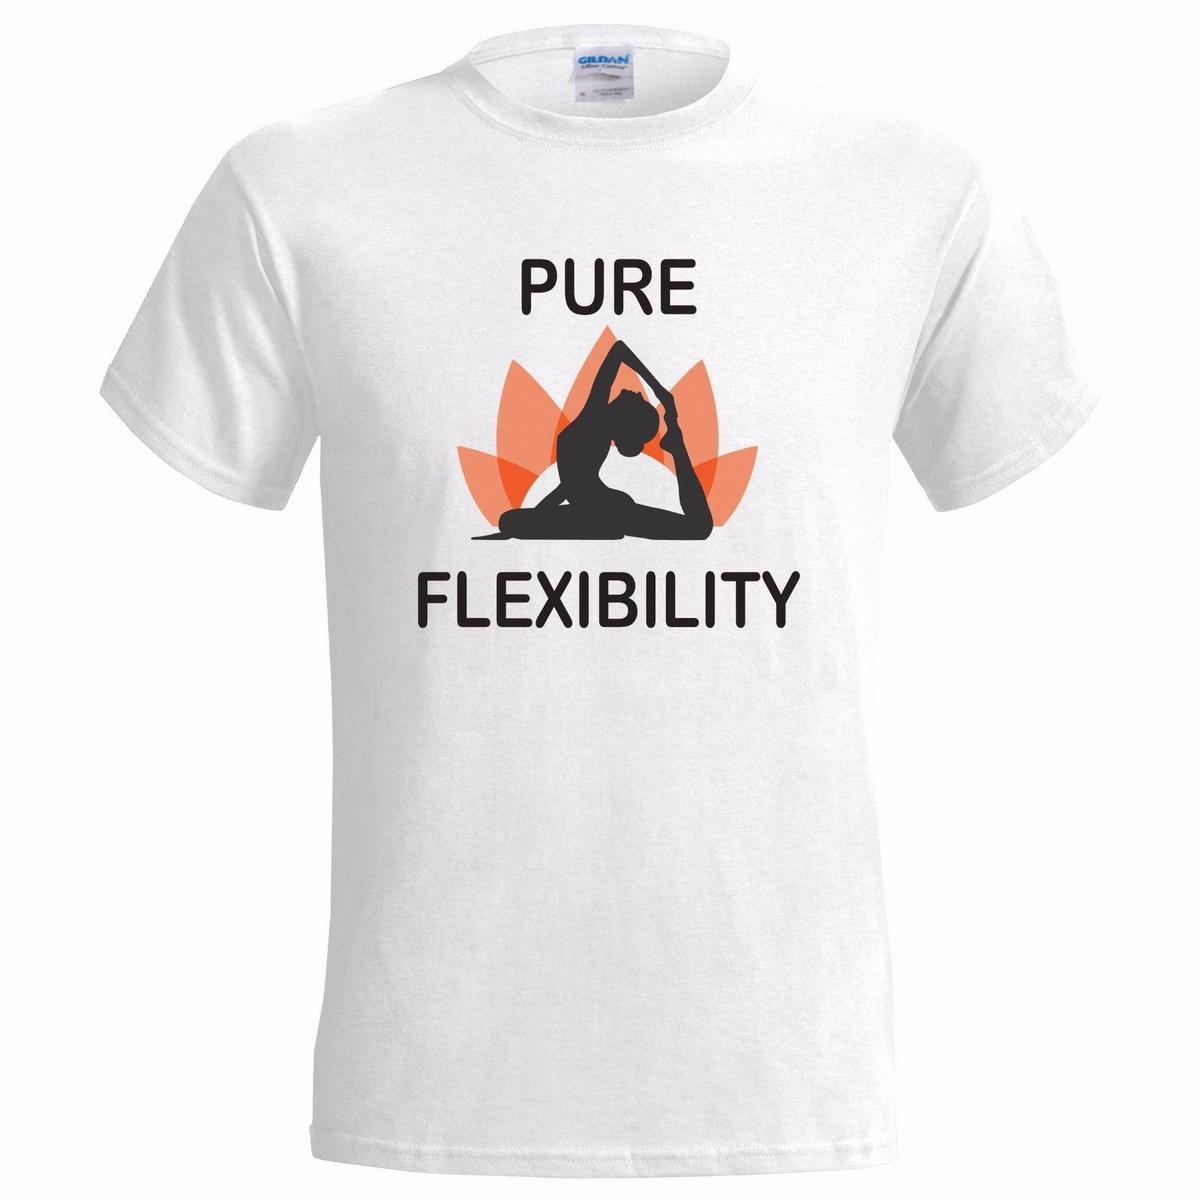 PURE FLEXIBILITY YOGA DESIGN MENS T SHIRT LOTUS FLEXIBLE ART HEALTH HEALTHY GIFT